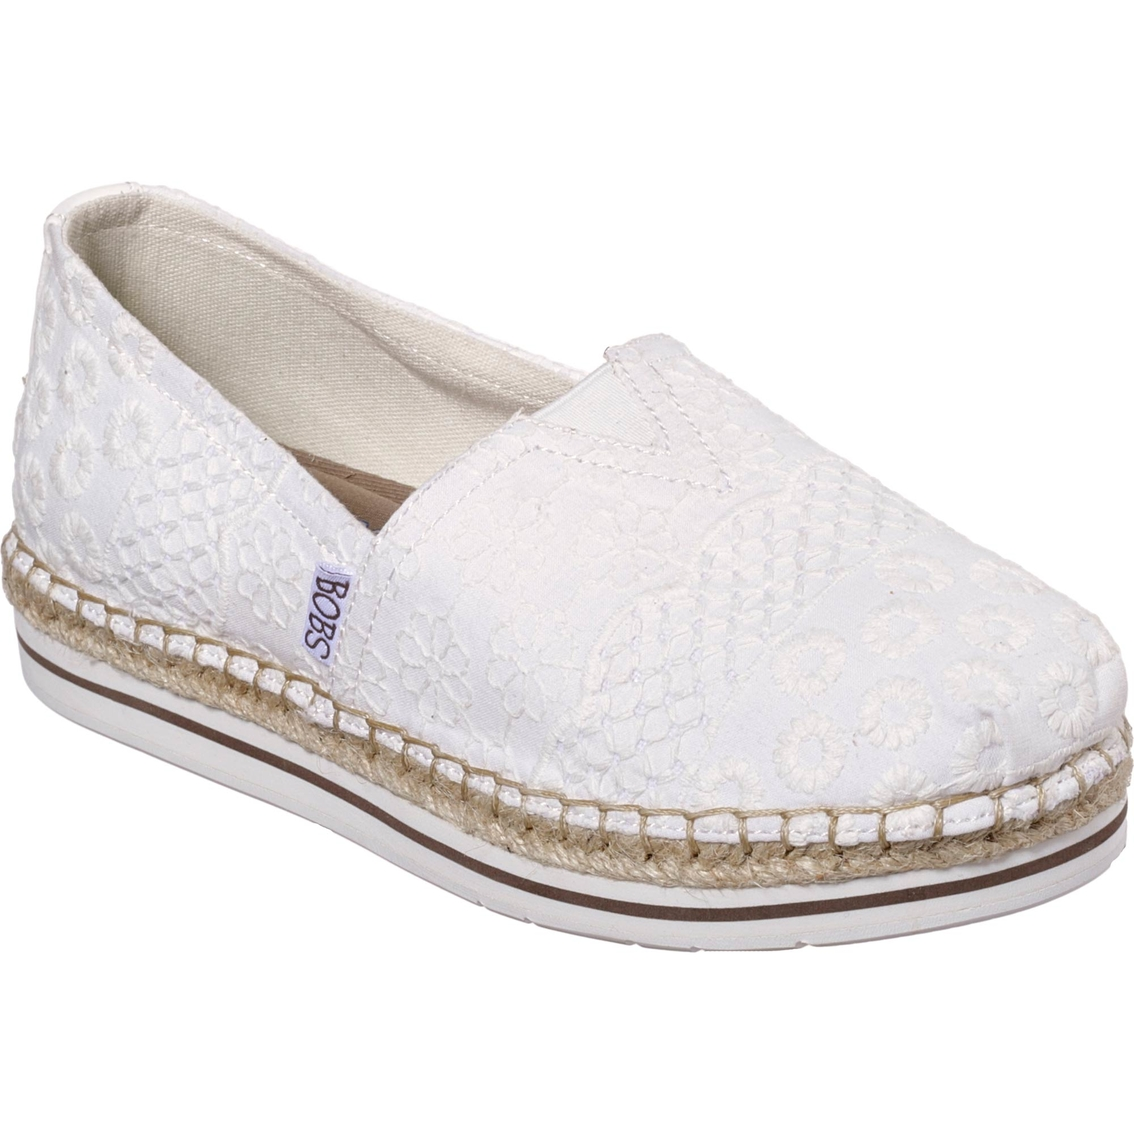 2fff80a7bf787 Skechers Bobs Breeze Eternal Cool Slip On Shoes | Casuals | Shoes ...